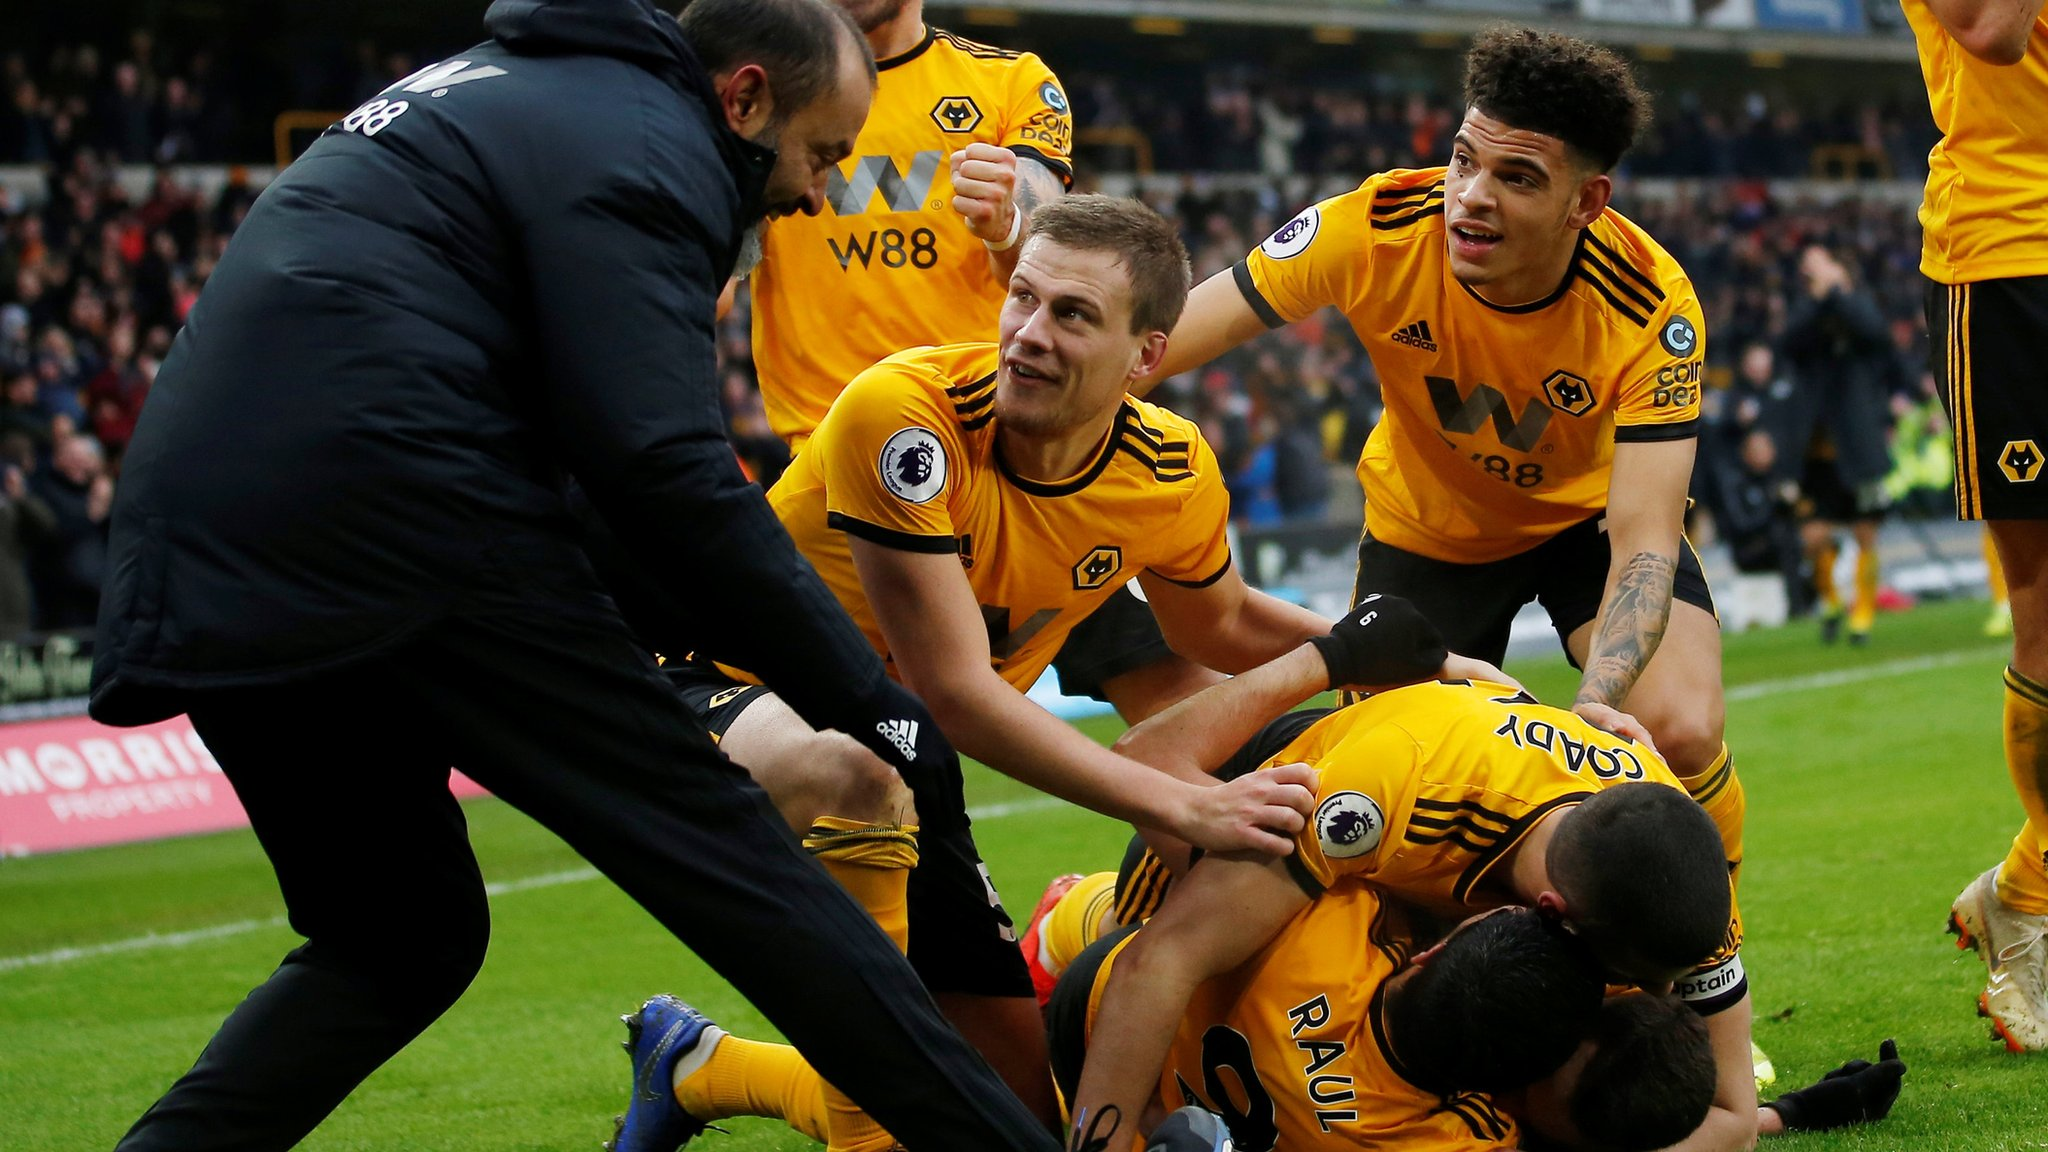 Wolves 4-3 Leicester City: Diogo Jota hat-trick as hosts snatch win in thriller